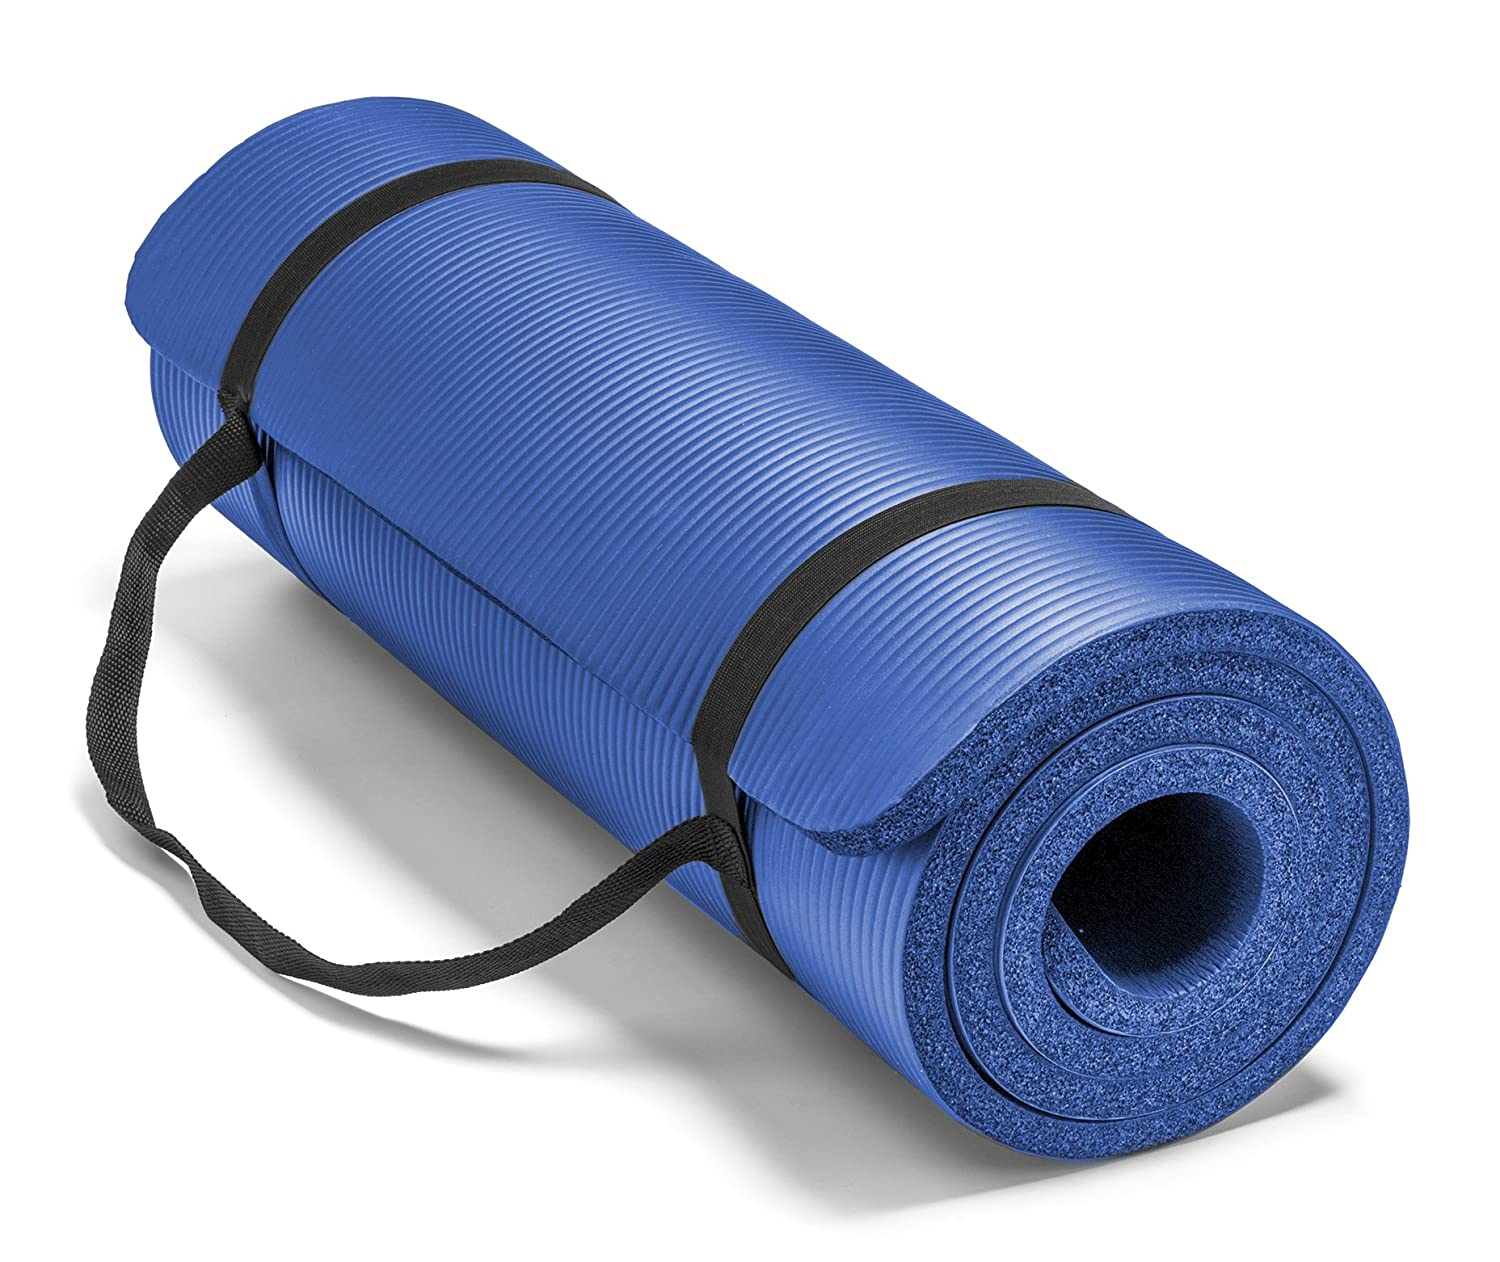 x dark pilates inches exercise fitness nbr blue mat yoga with foam and carry mats strap products thick for padded